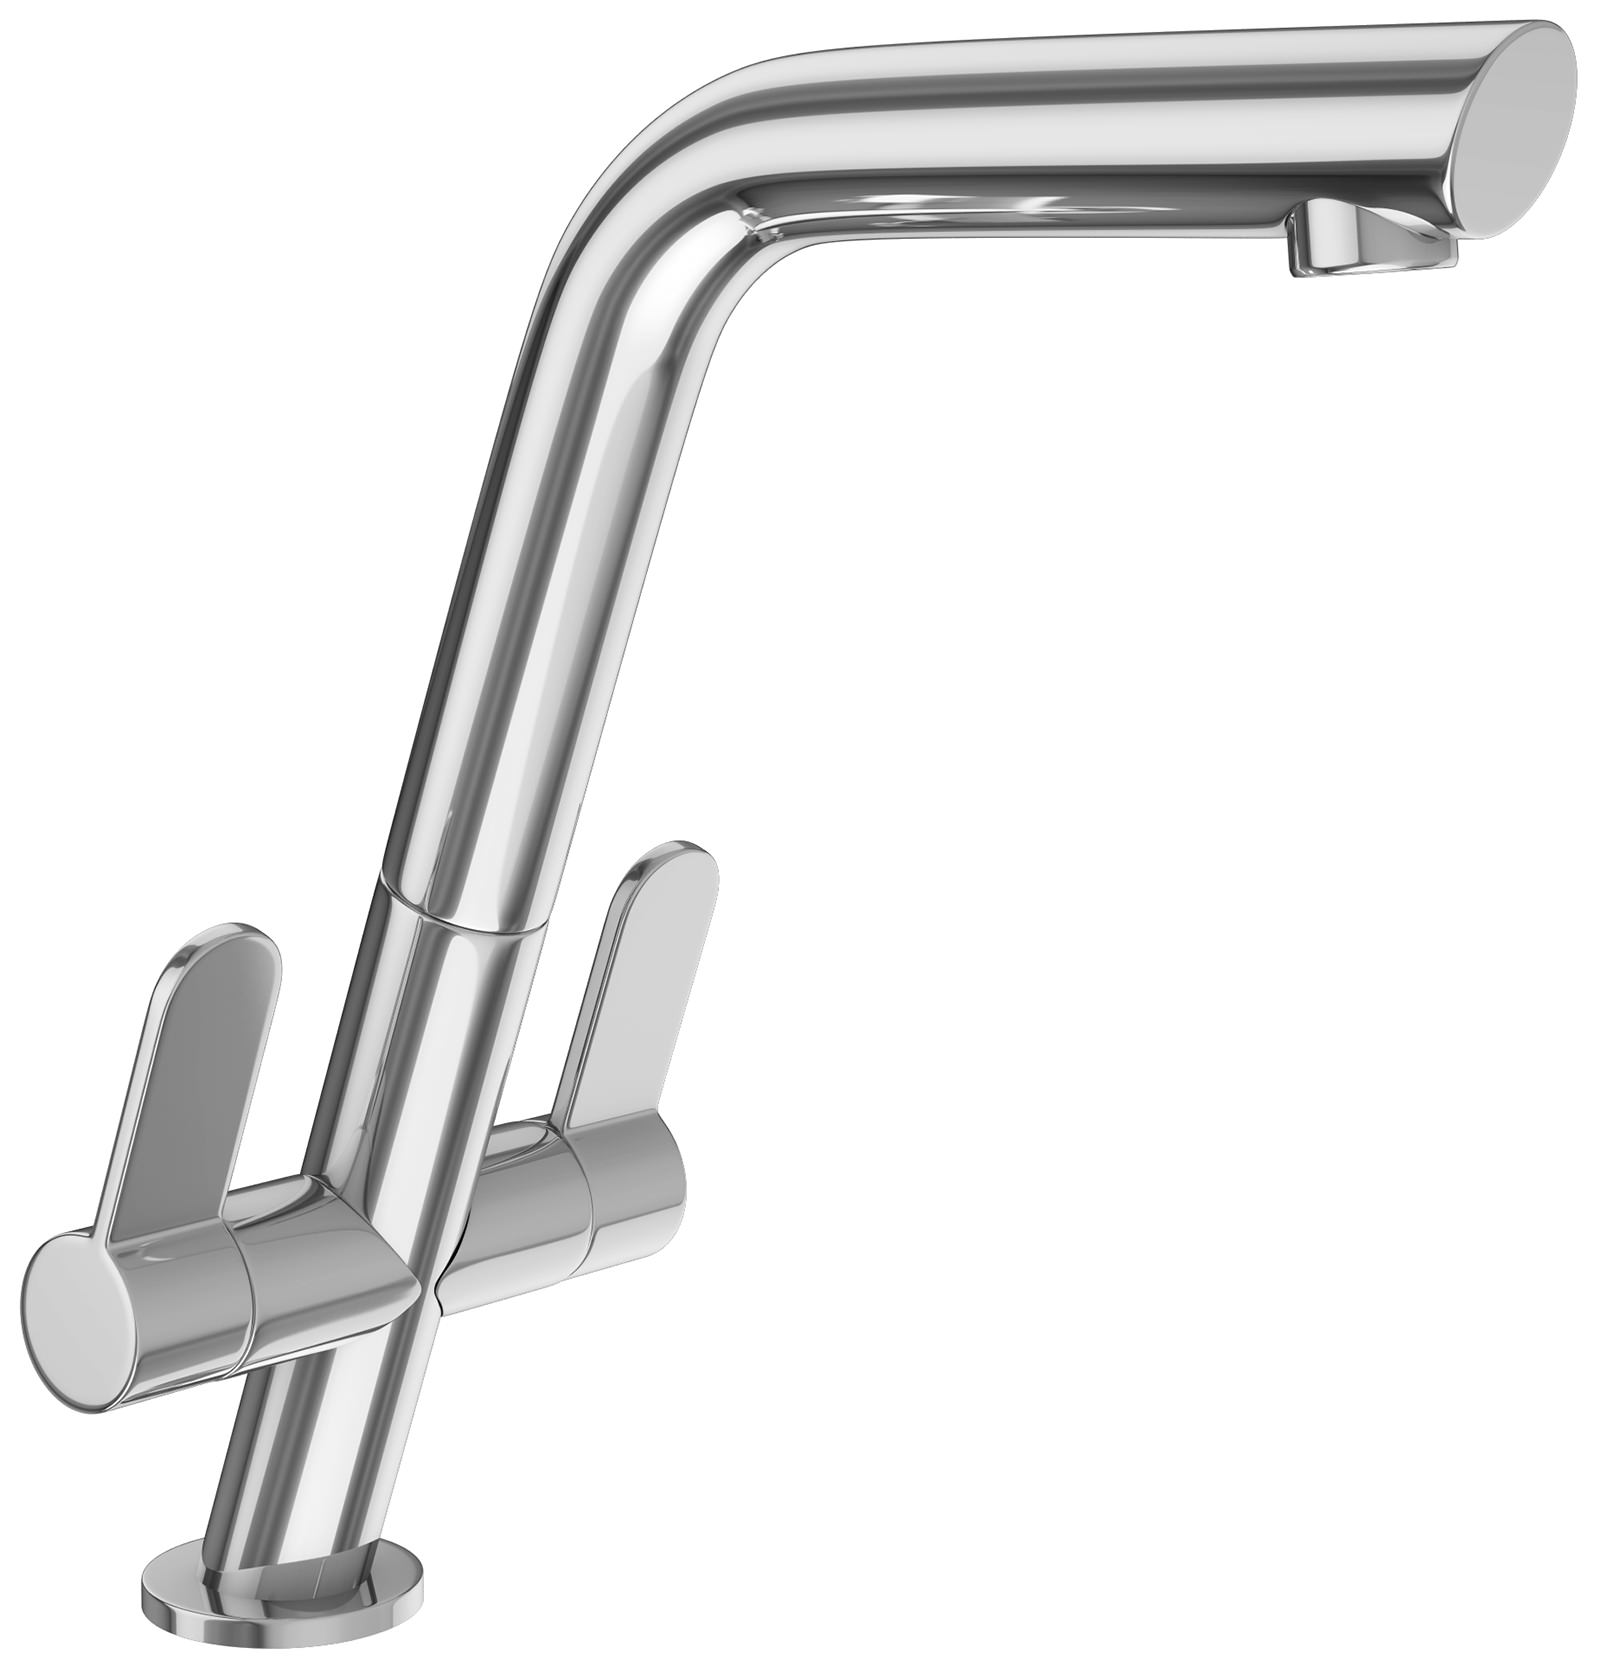 Franke cresta kitchen sink mixer tap chrome 1150250642 for Franke küchen